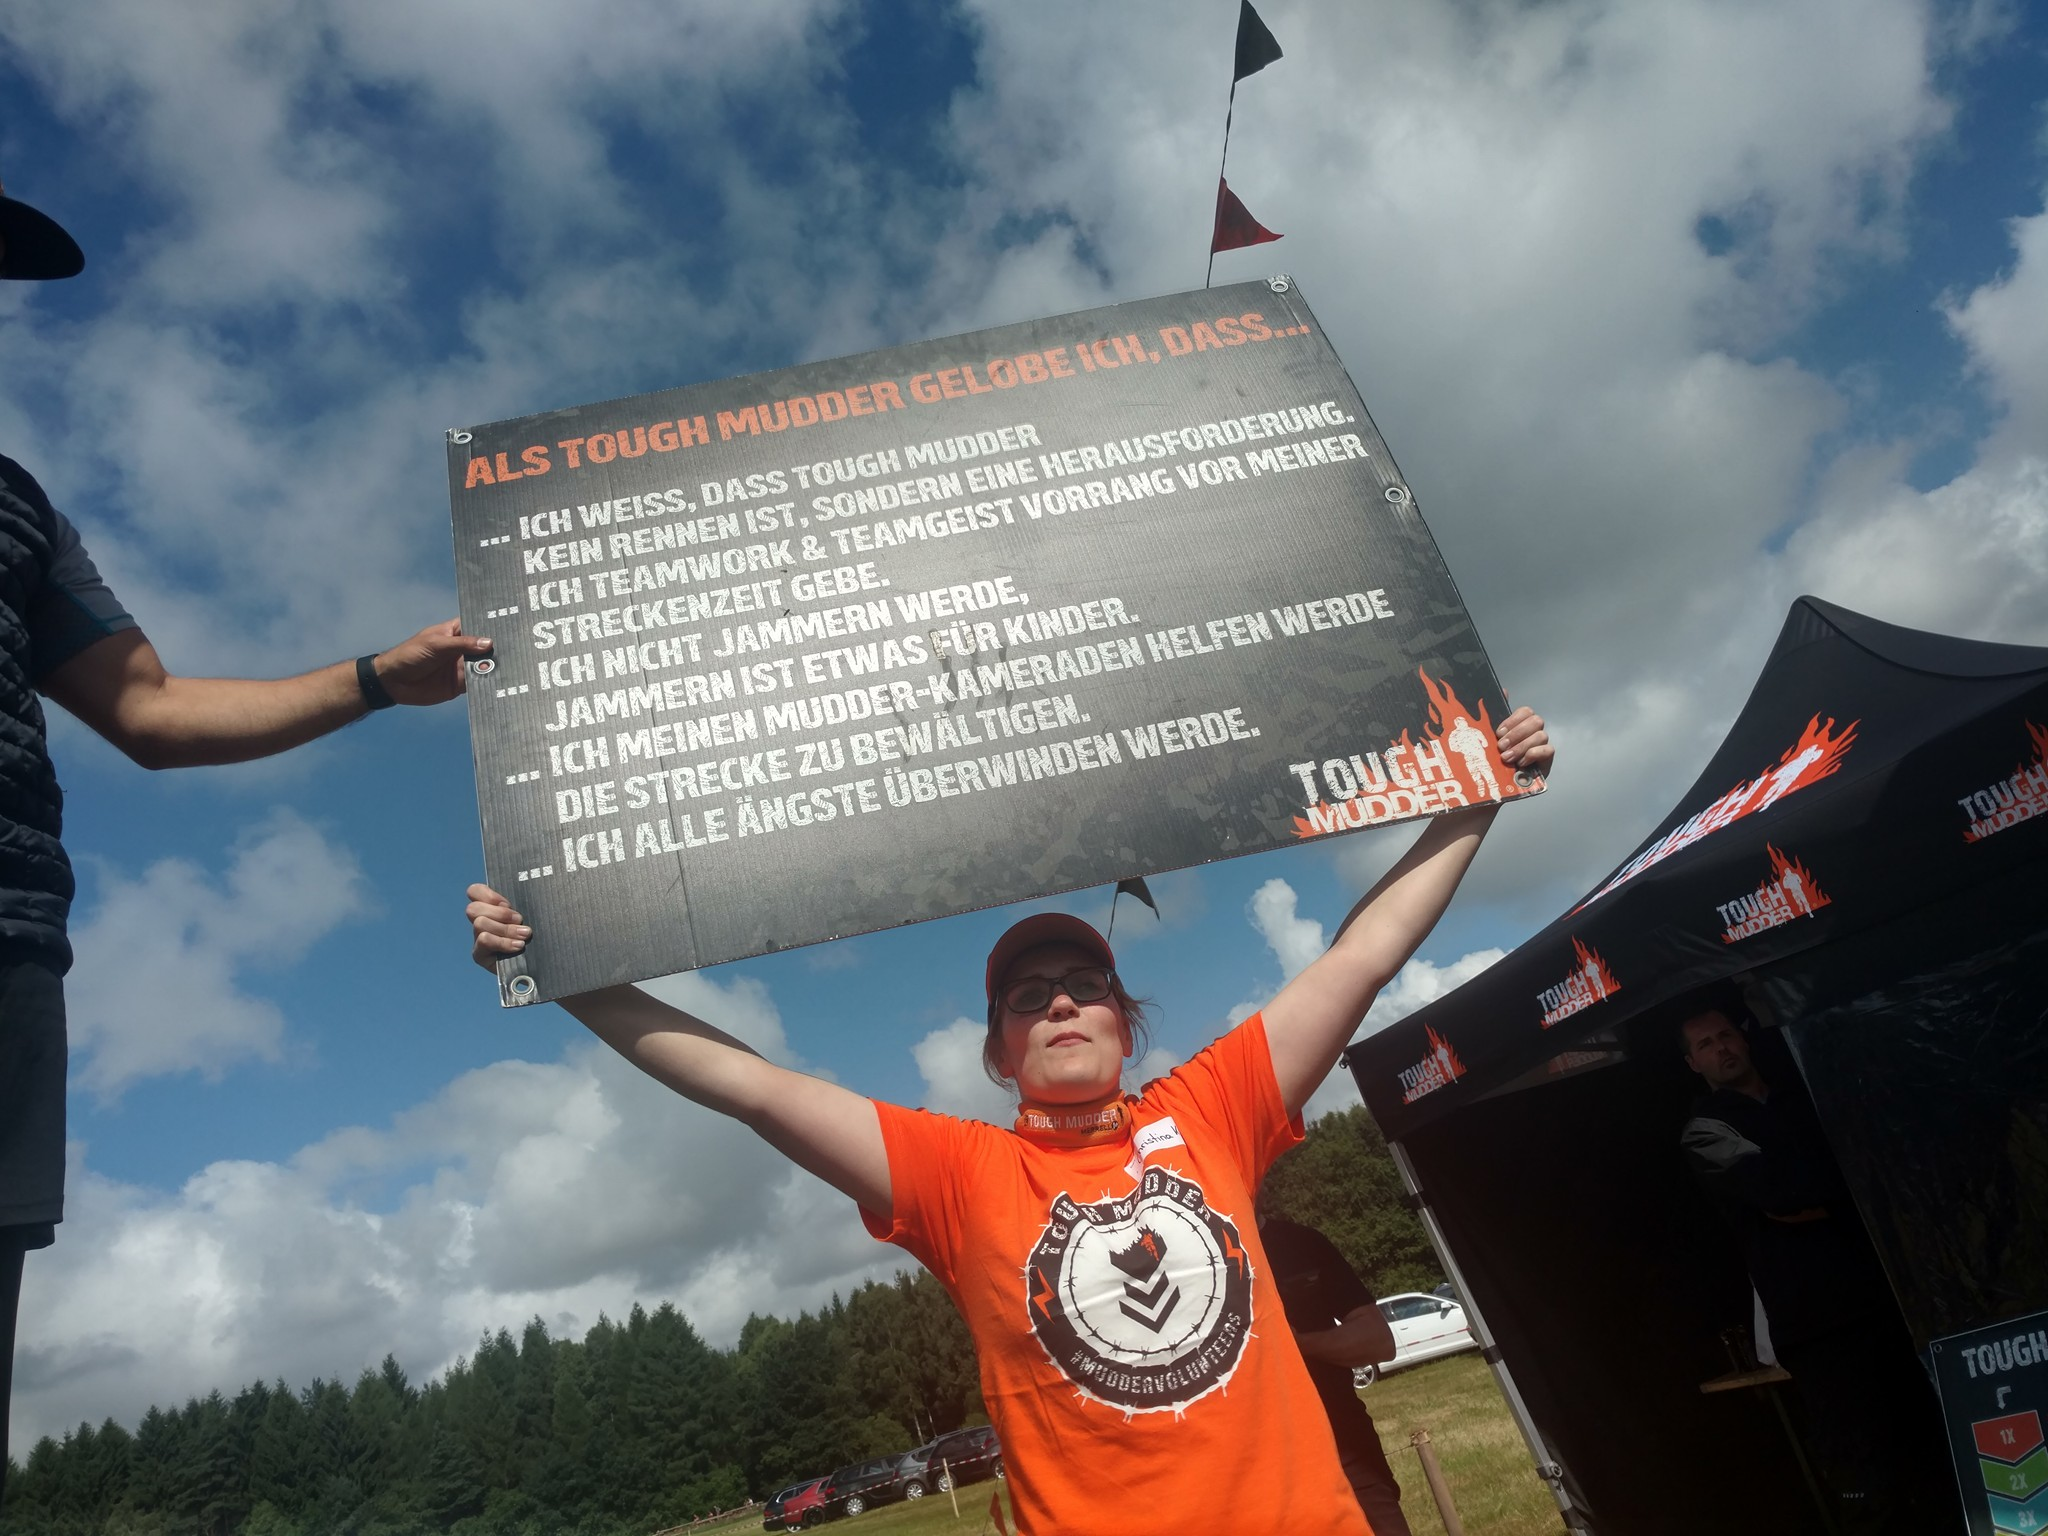 Tough Mudder pledge - in German